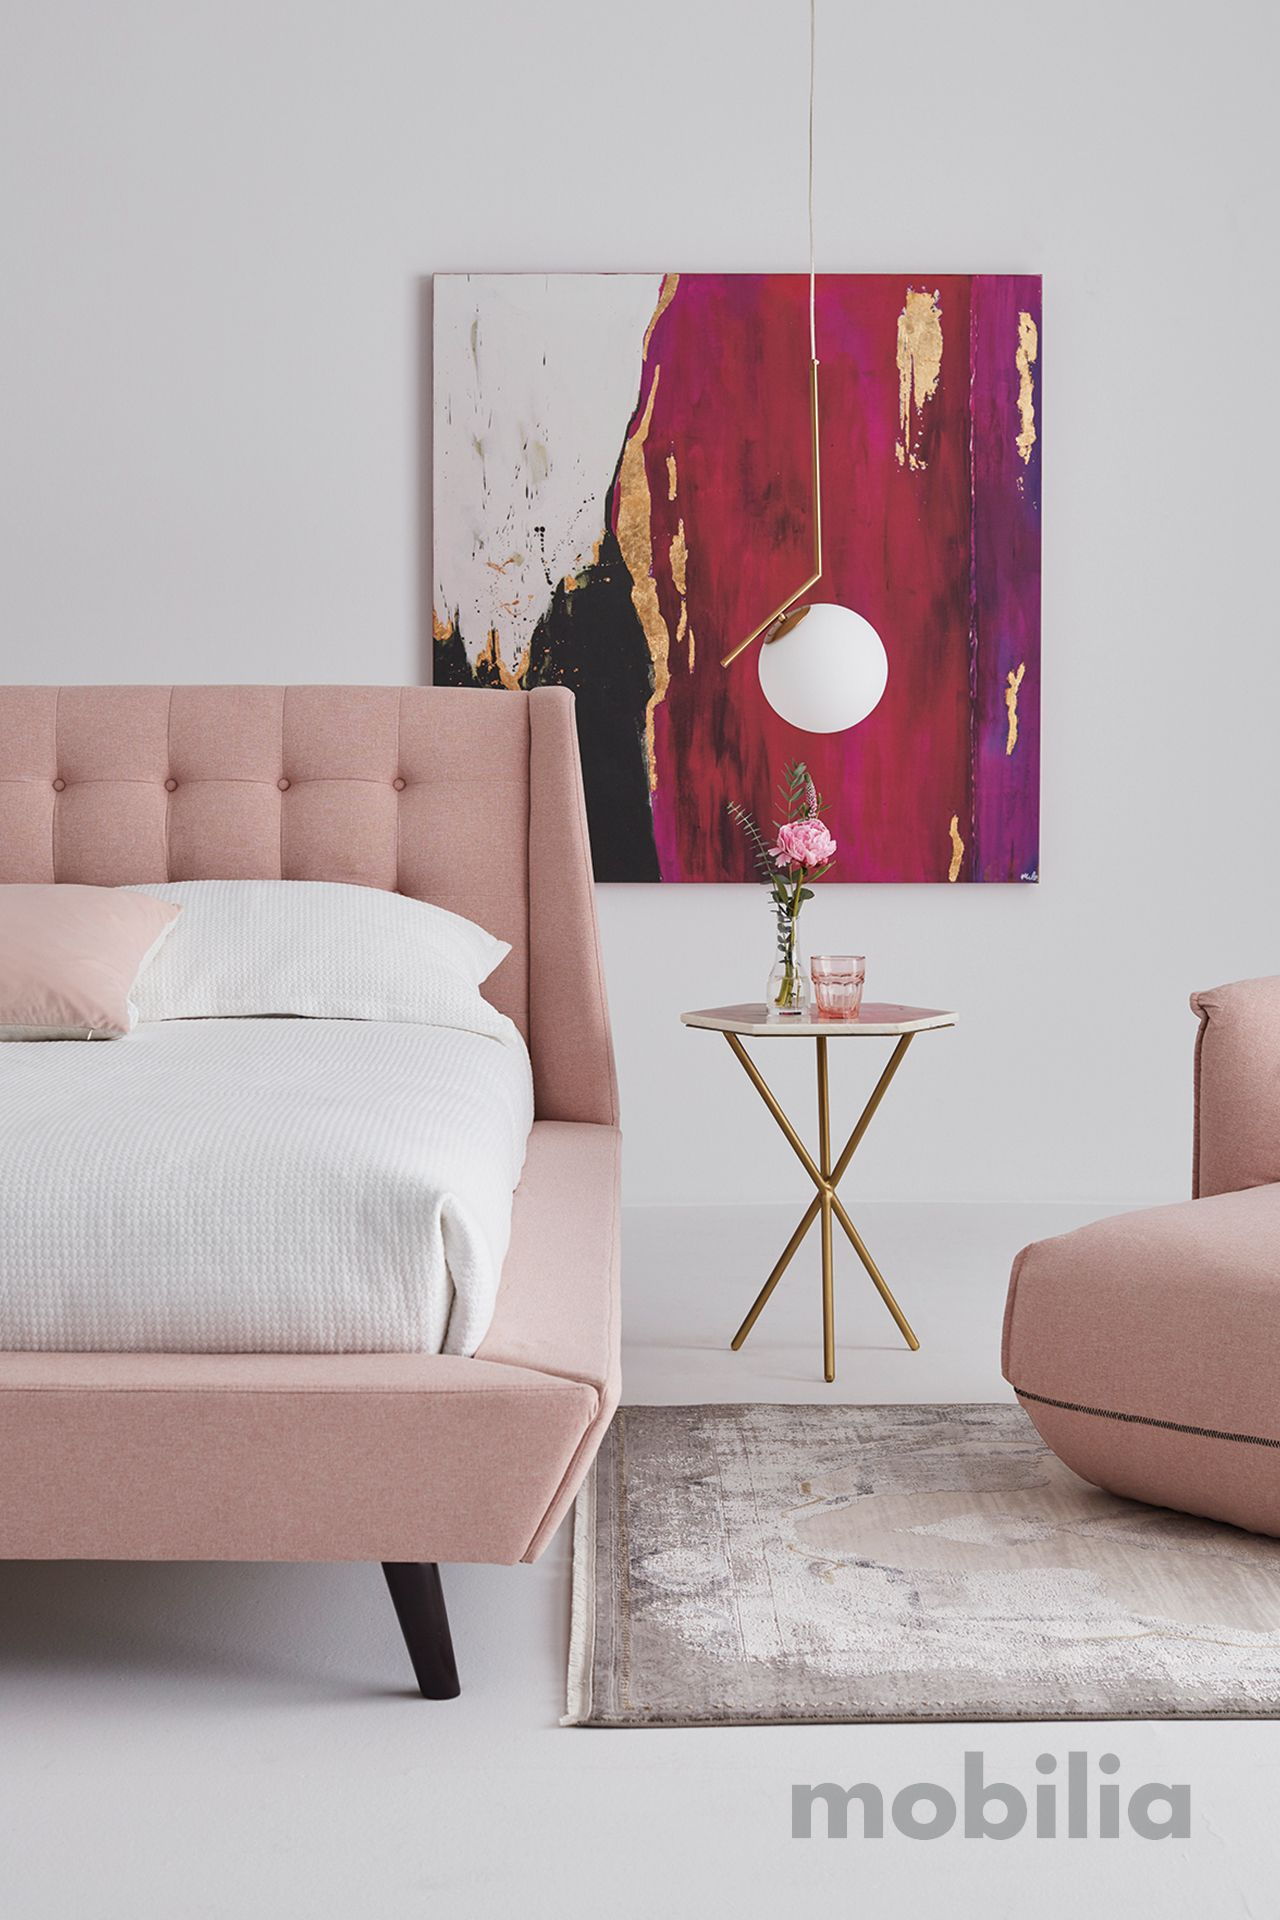 Mobilia Canada Stylish bed in 2020 Stylish beds